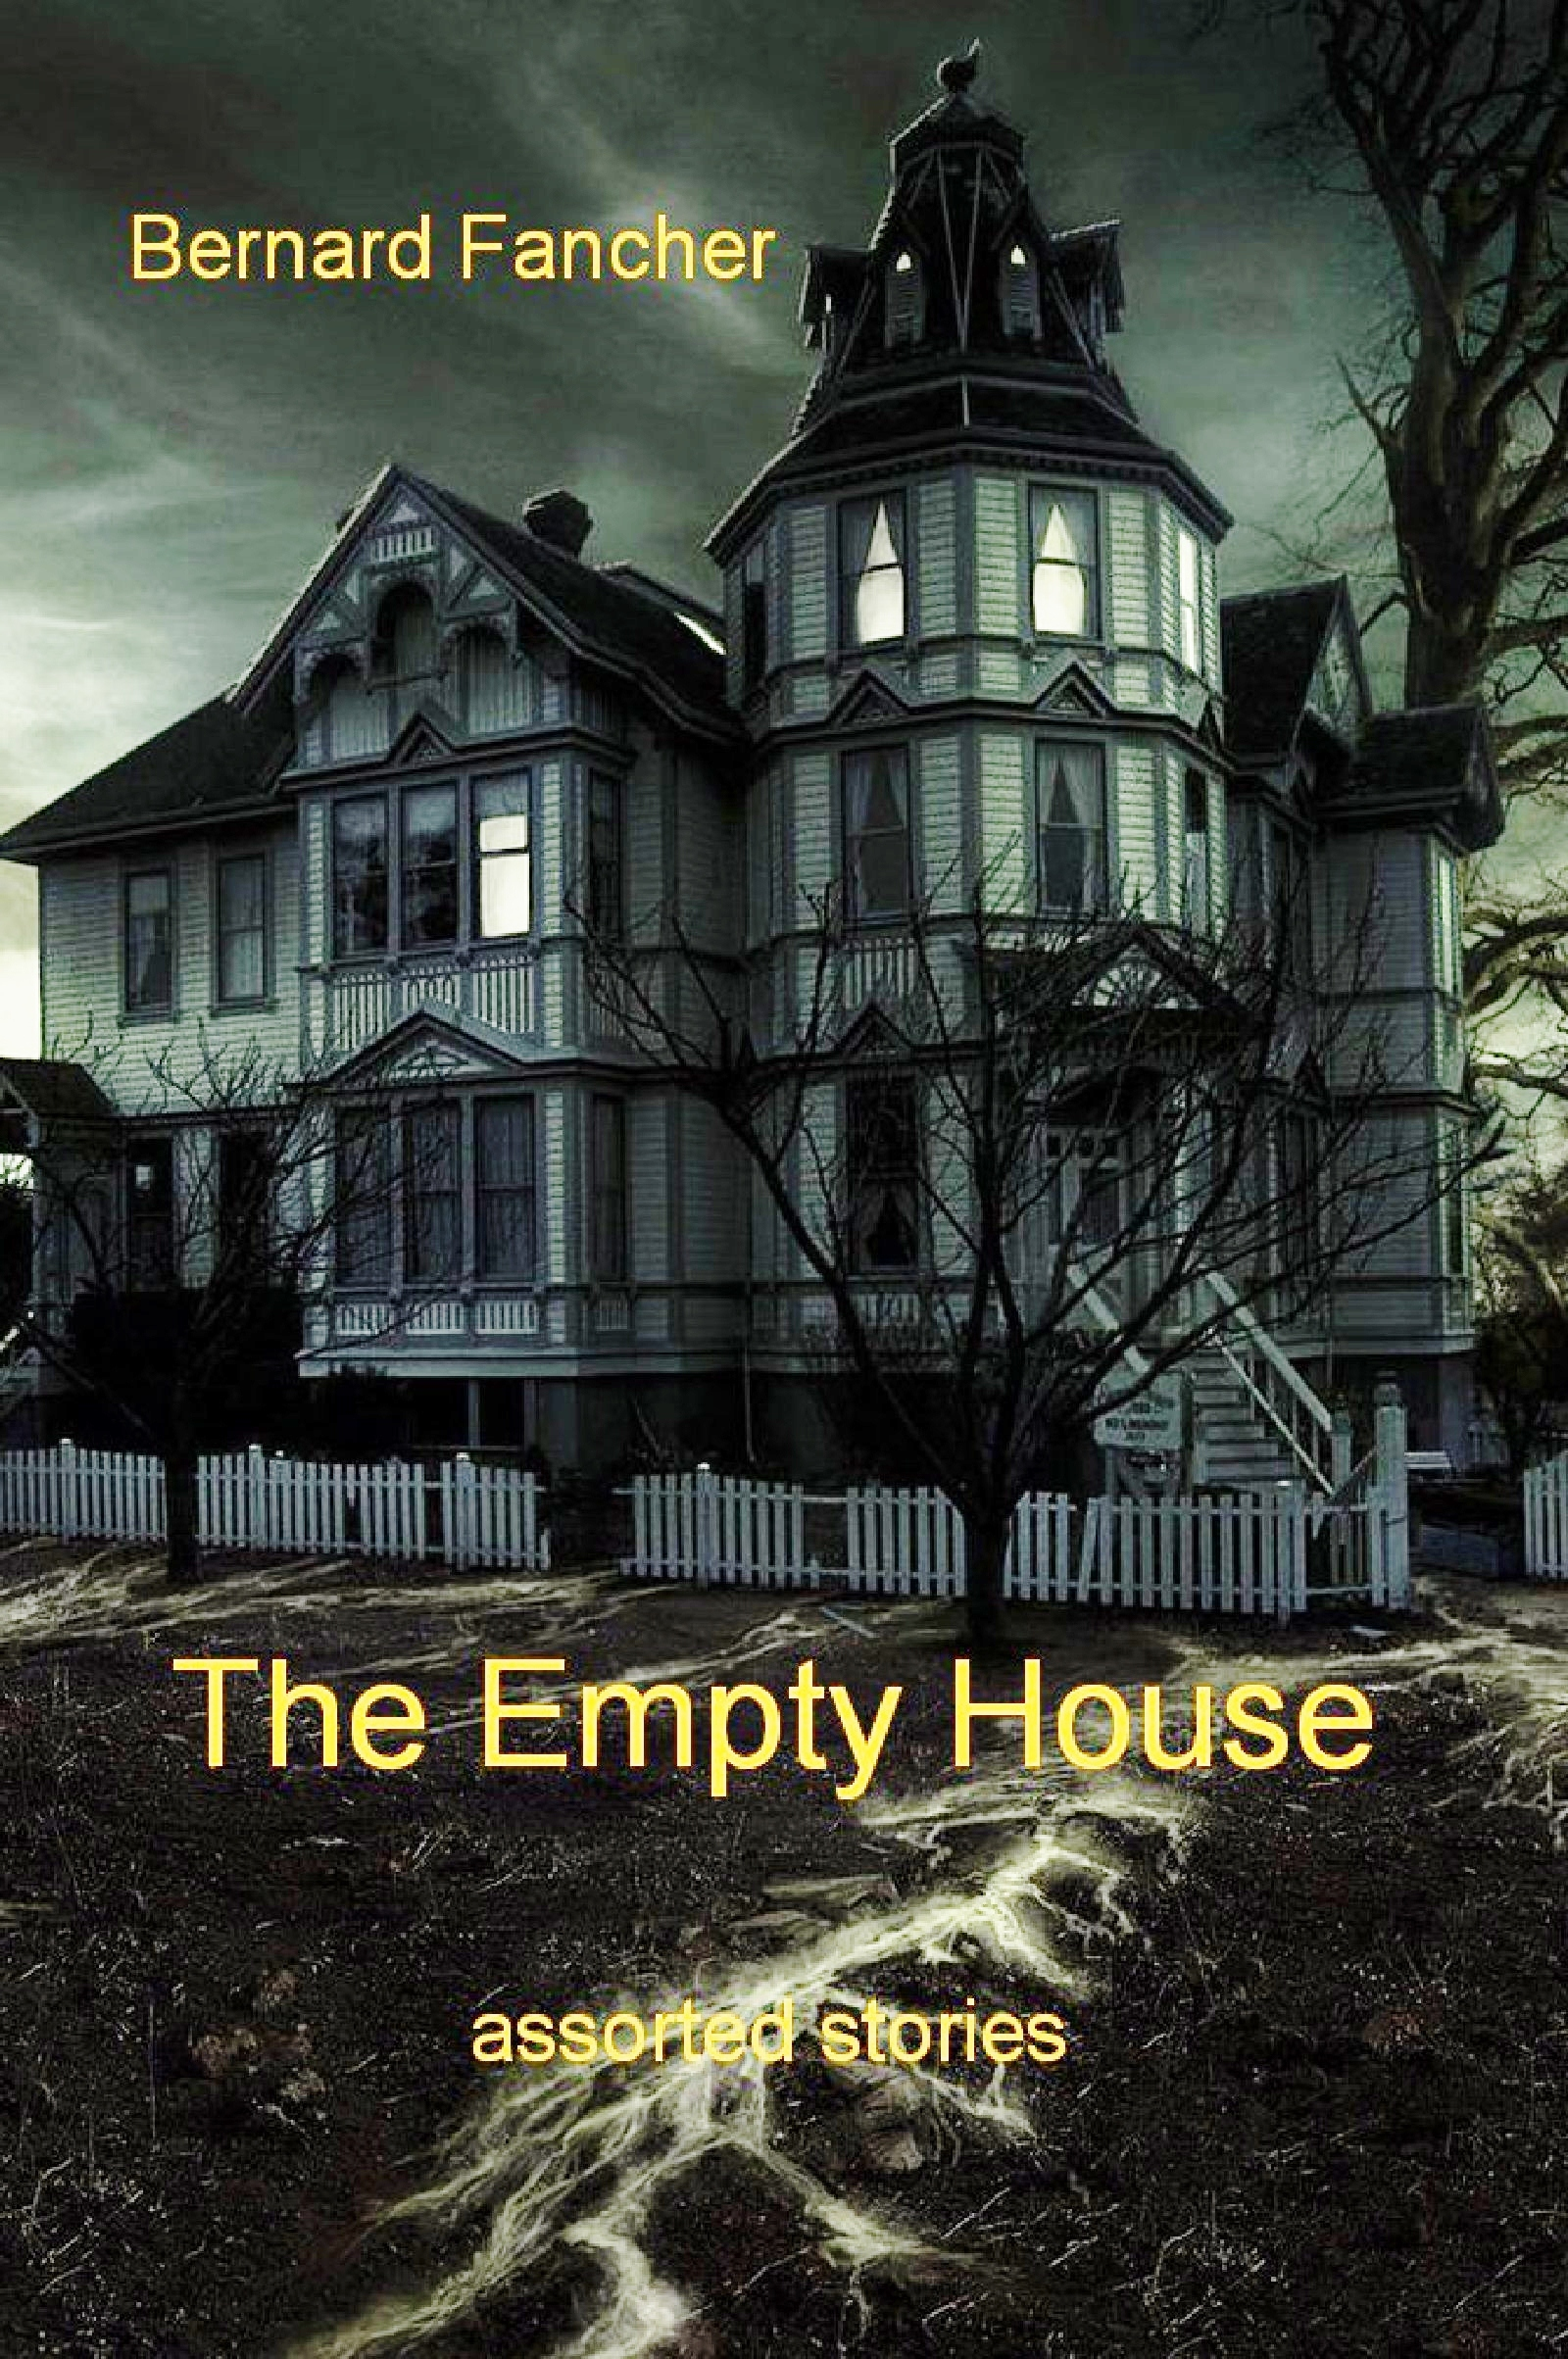 The Empty House, assorted stories